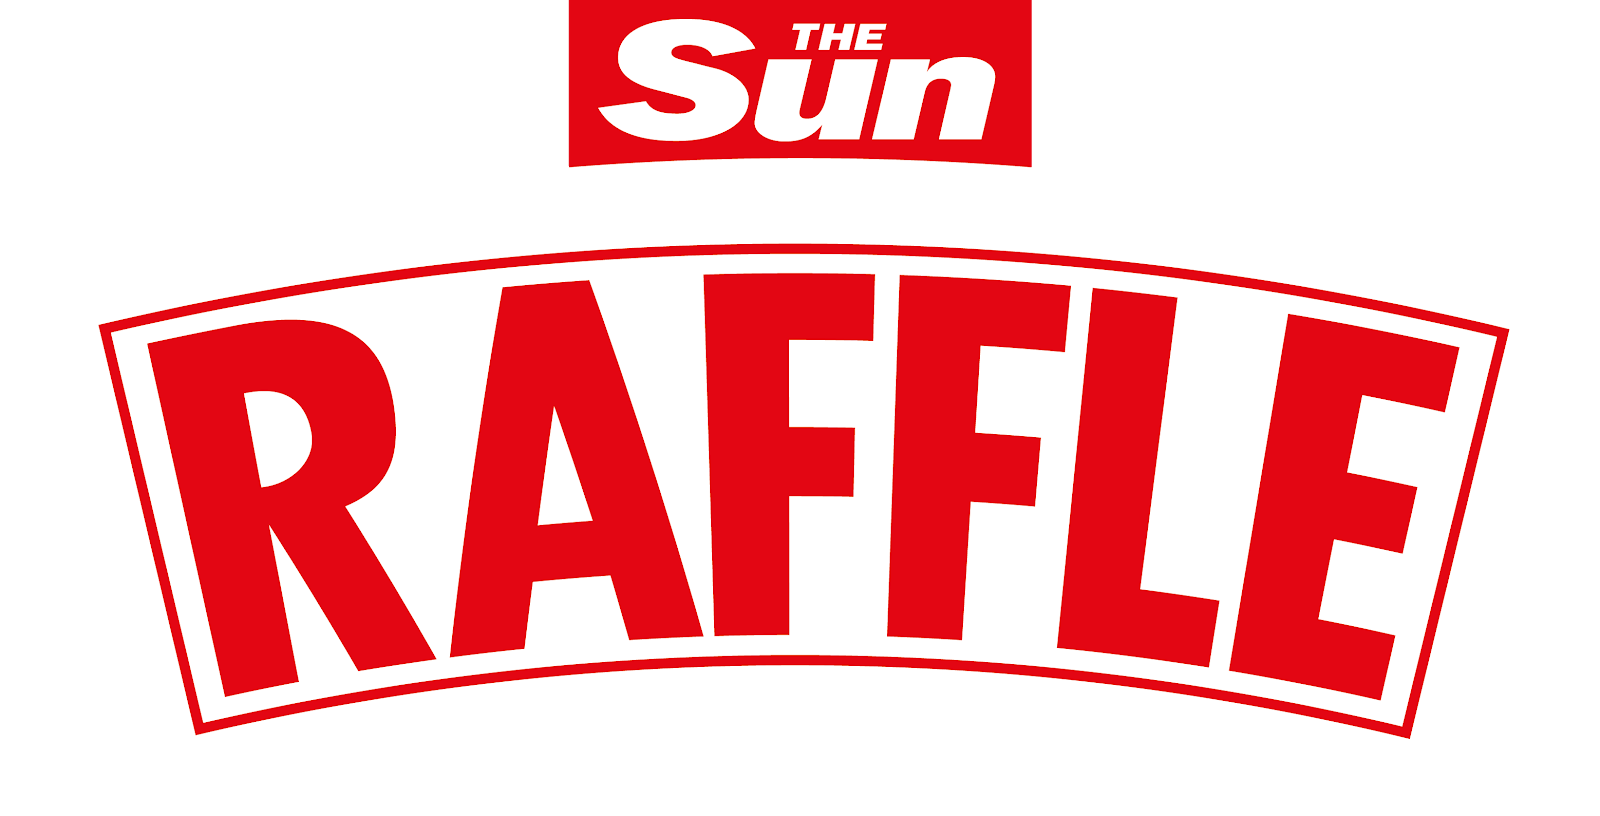 Join thousands of readers taking part in The Sun Raffle